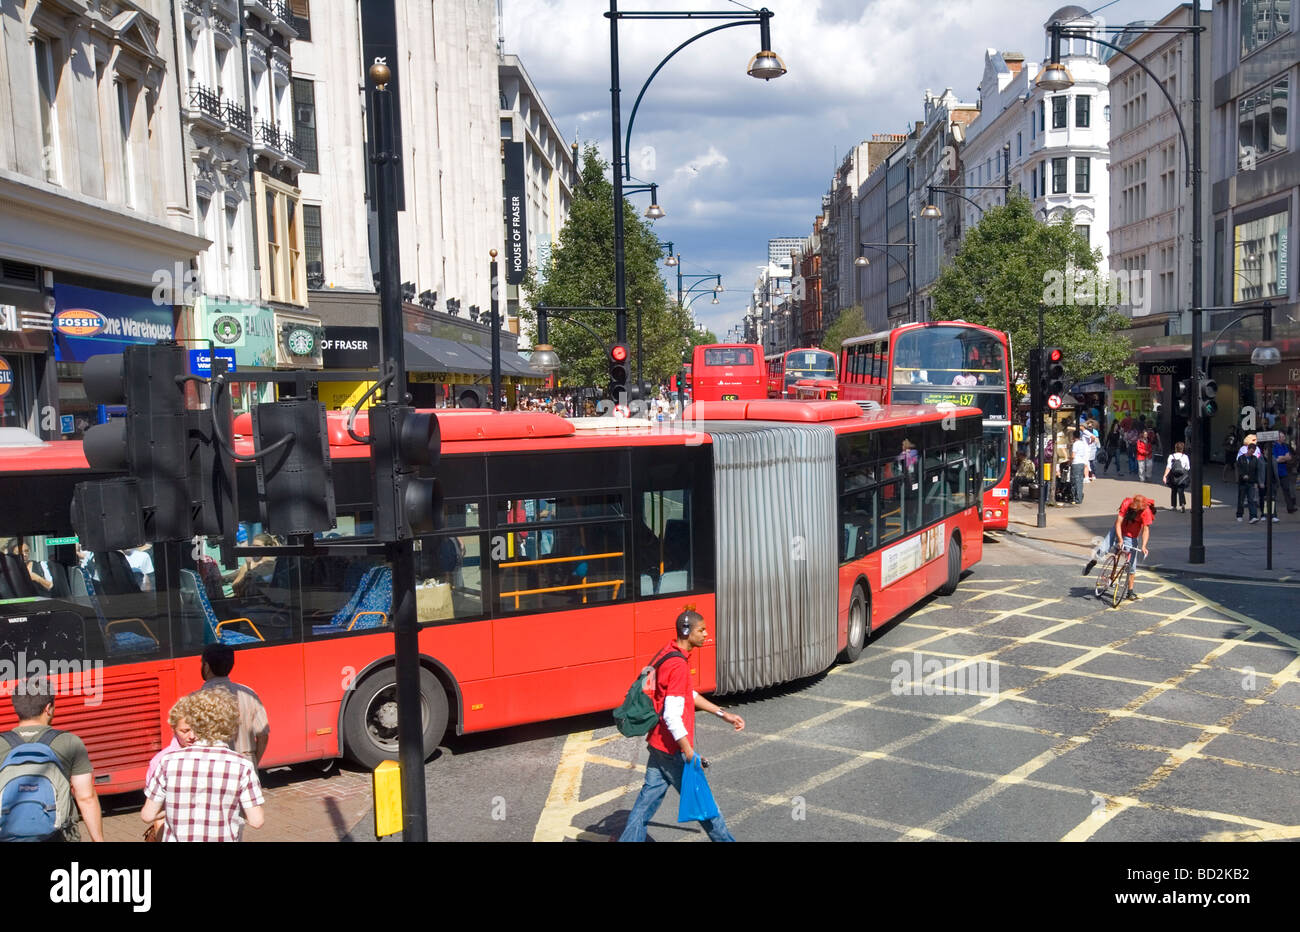 Bendy Bus and buses Oxford Street London England UK Europe - Stock Image